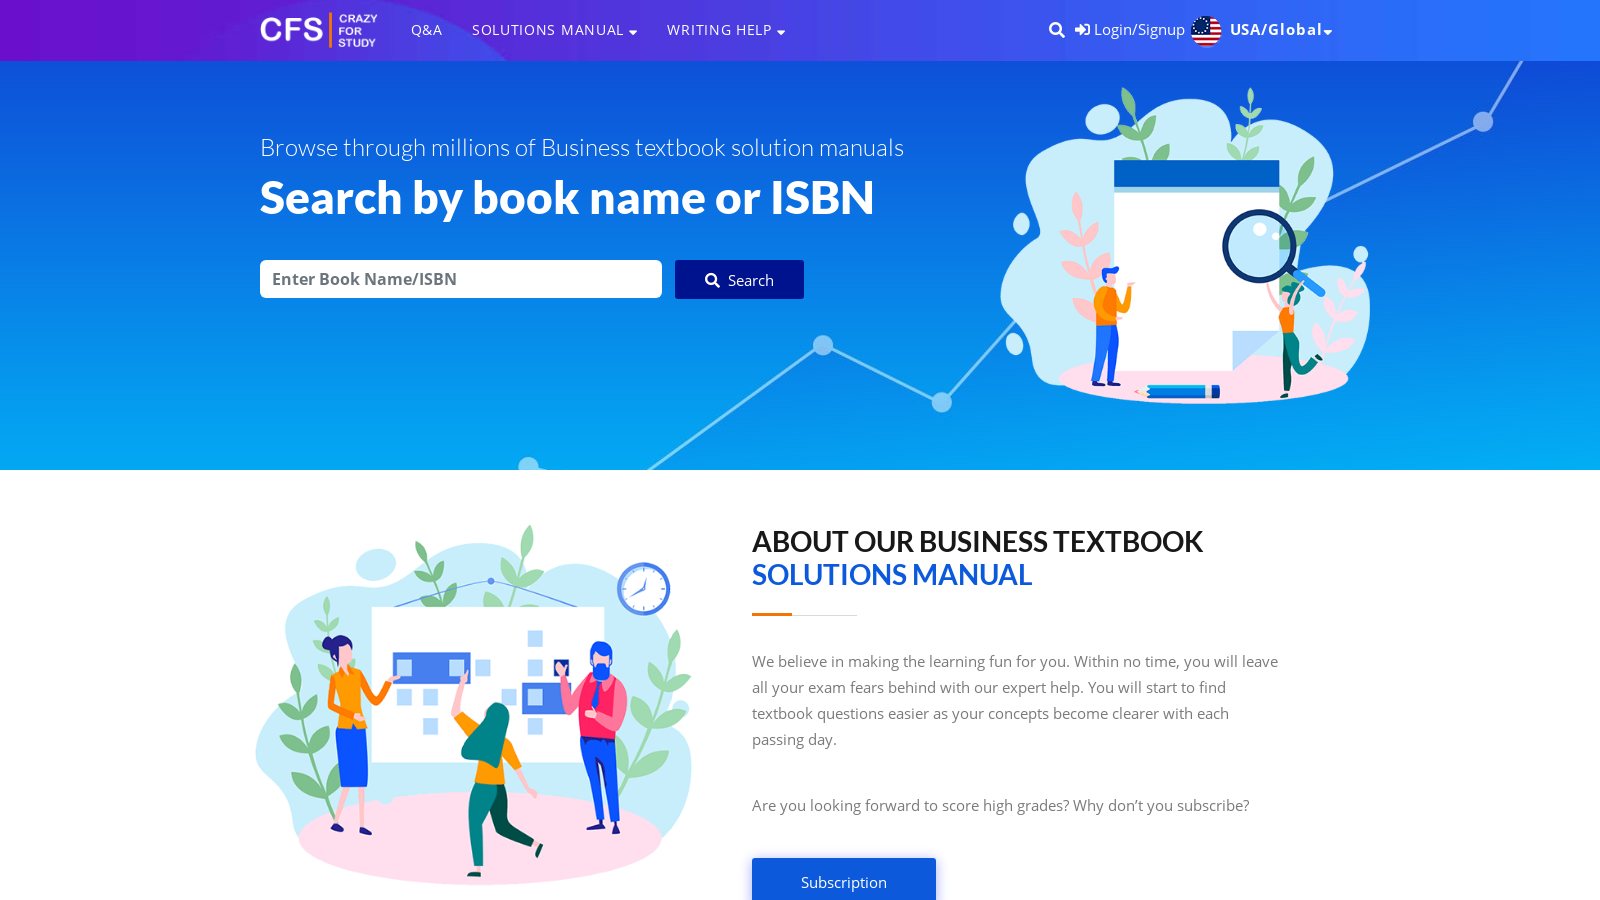 Get the Best Business textbook solutions manual by Ellie Smith